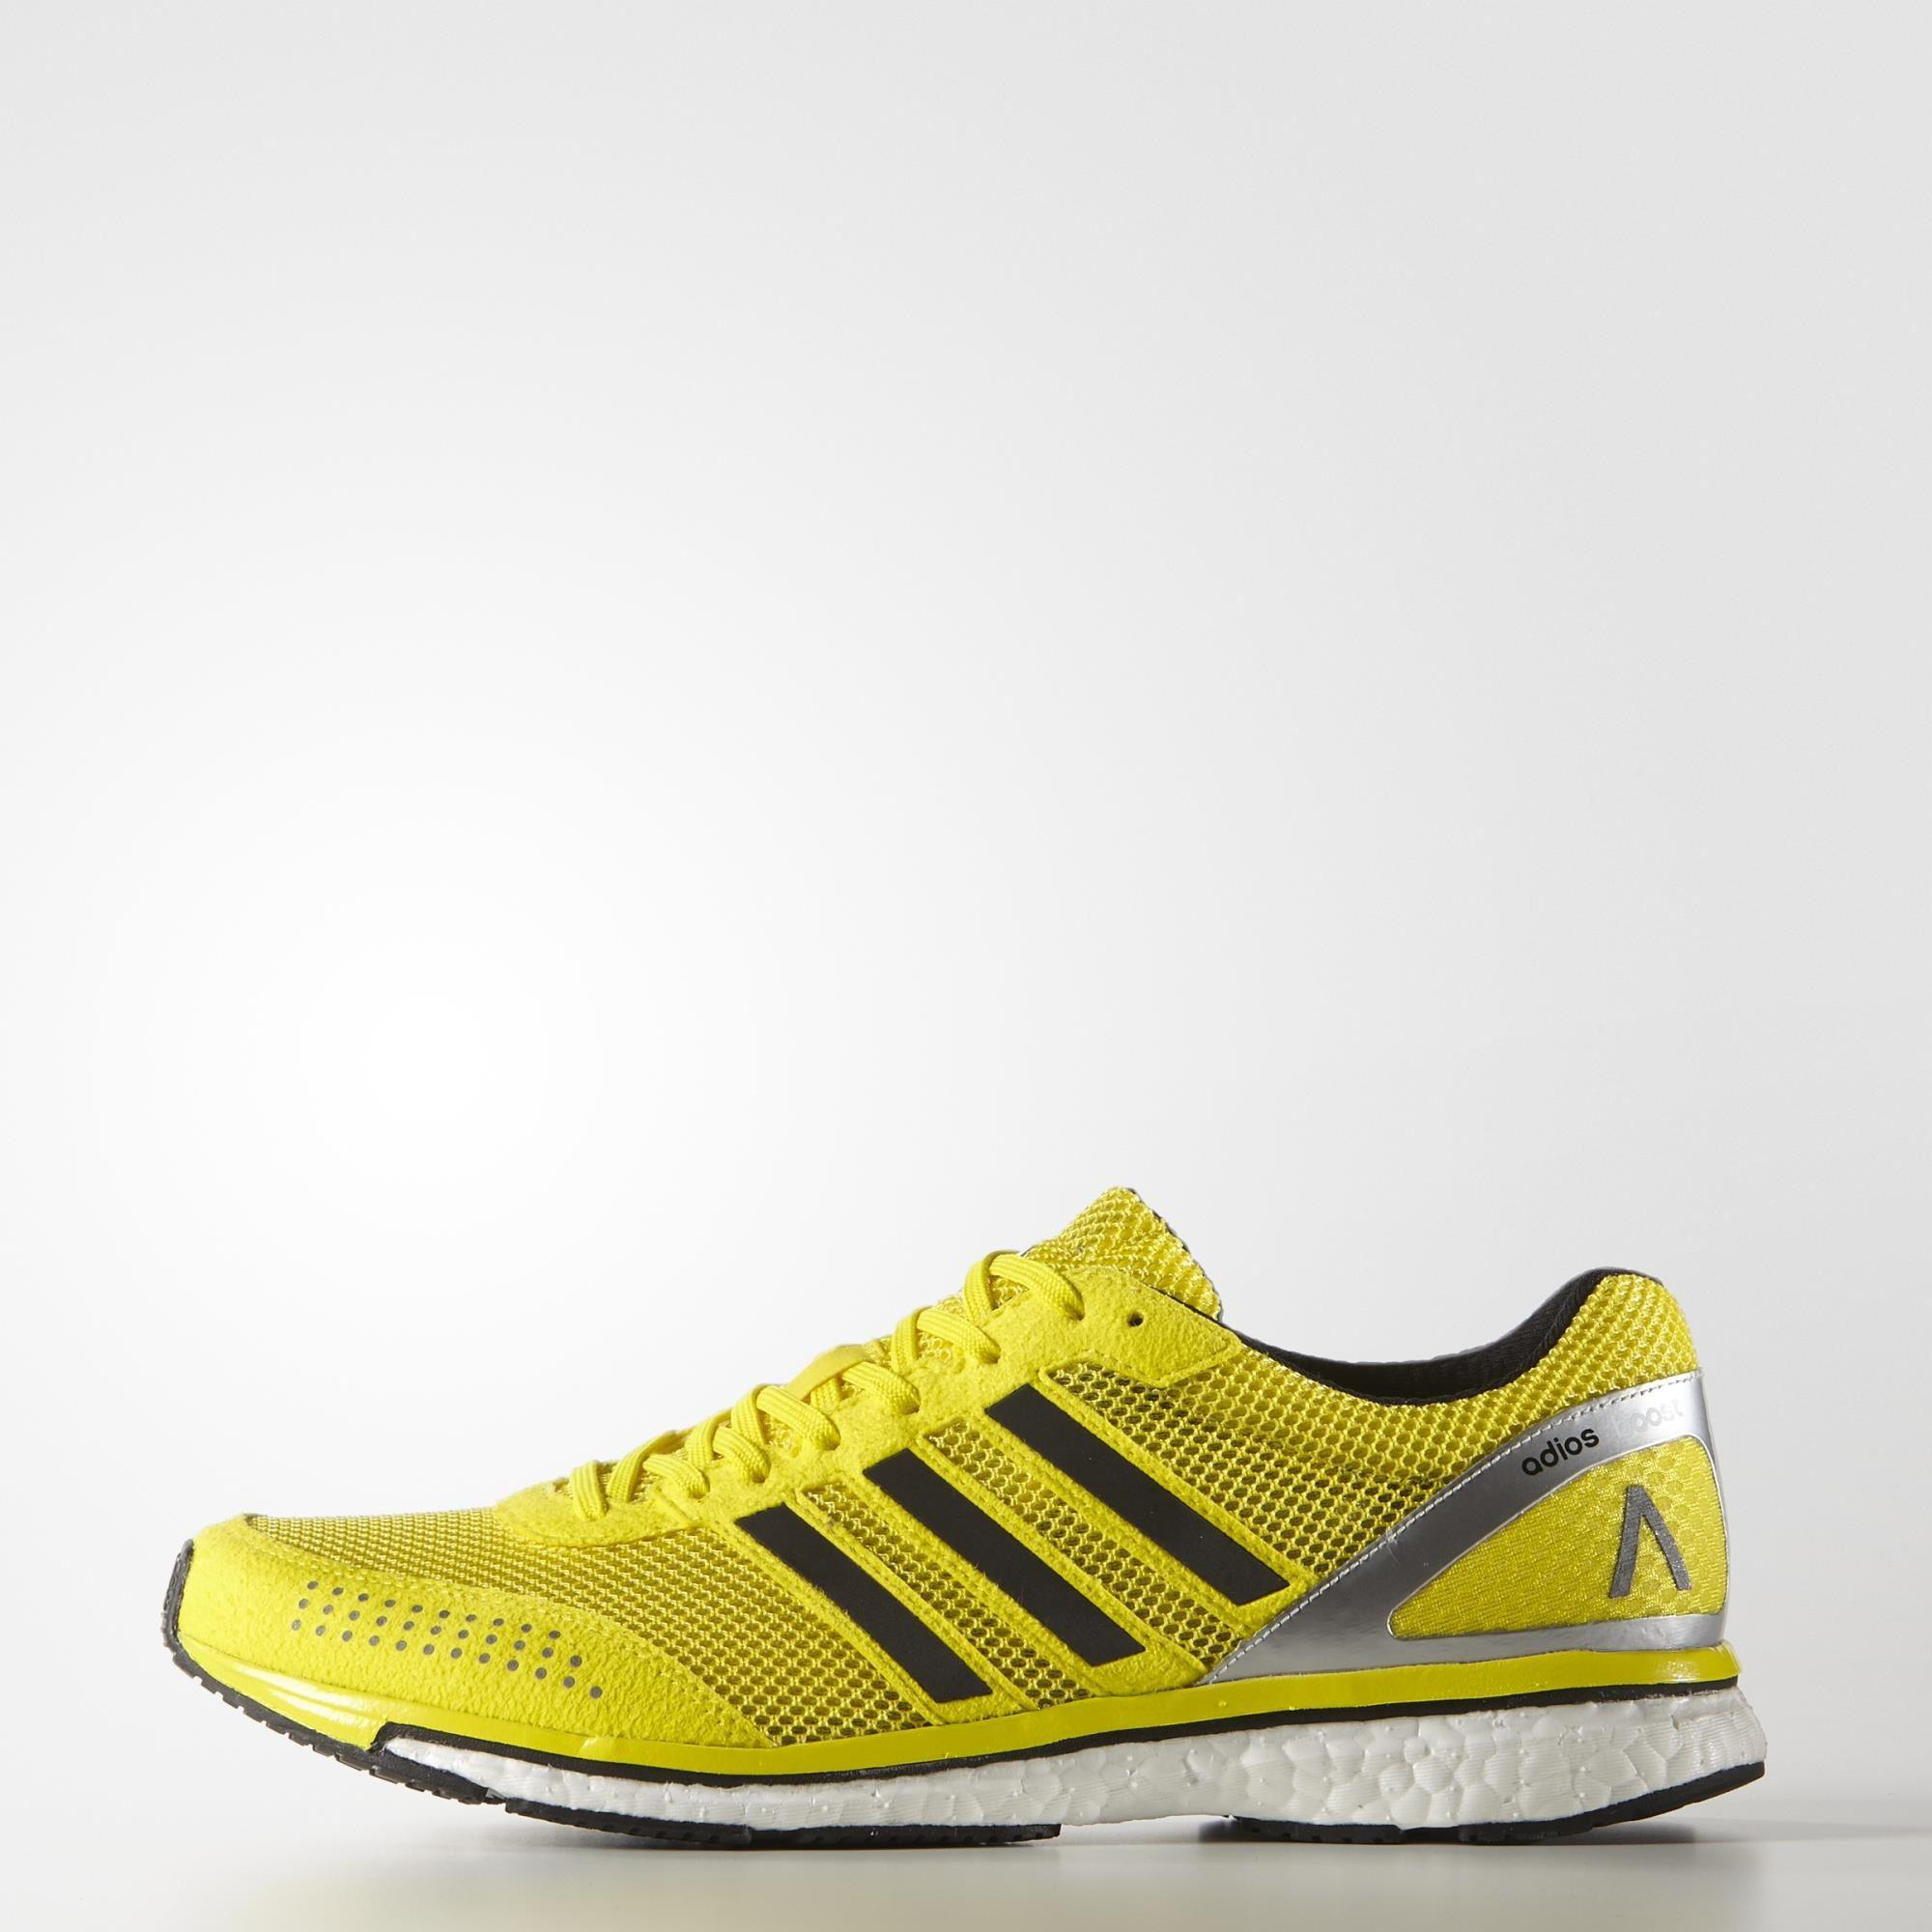 adidas mens adizero adios boost 2 0 haile running shoes. Black Bedroom Furniture Sets. Home Design Ideas